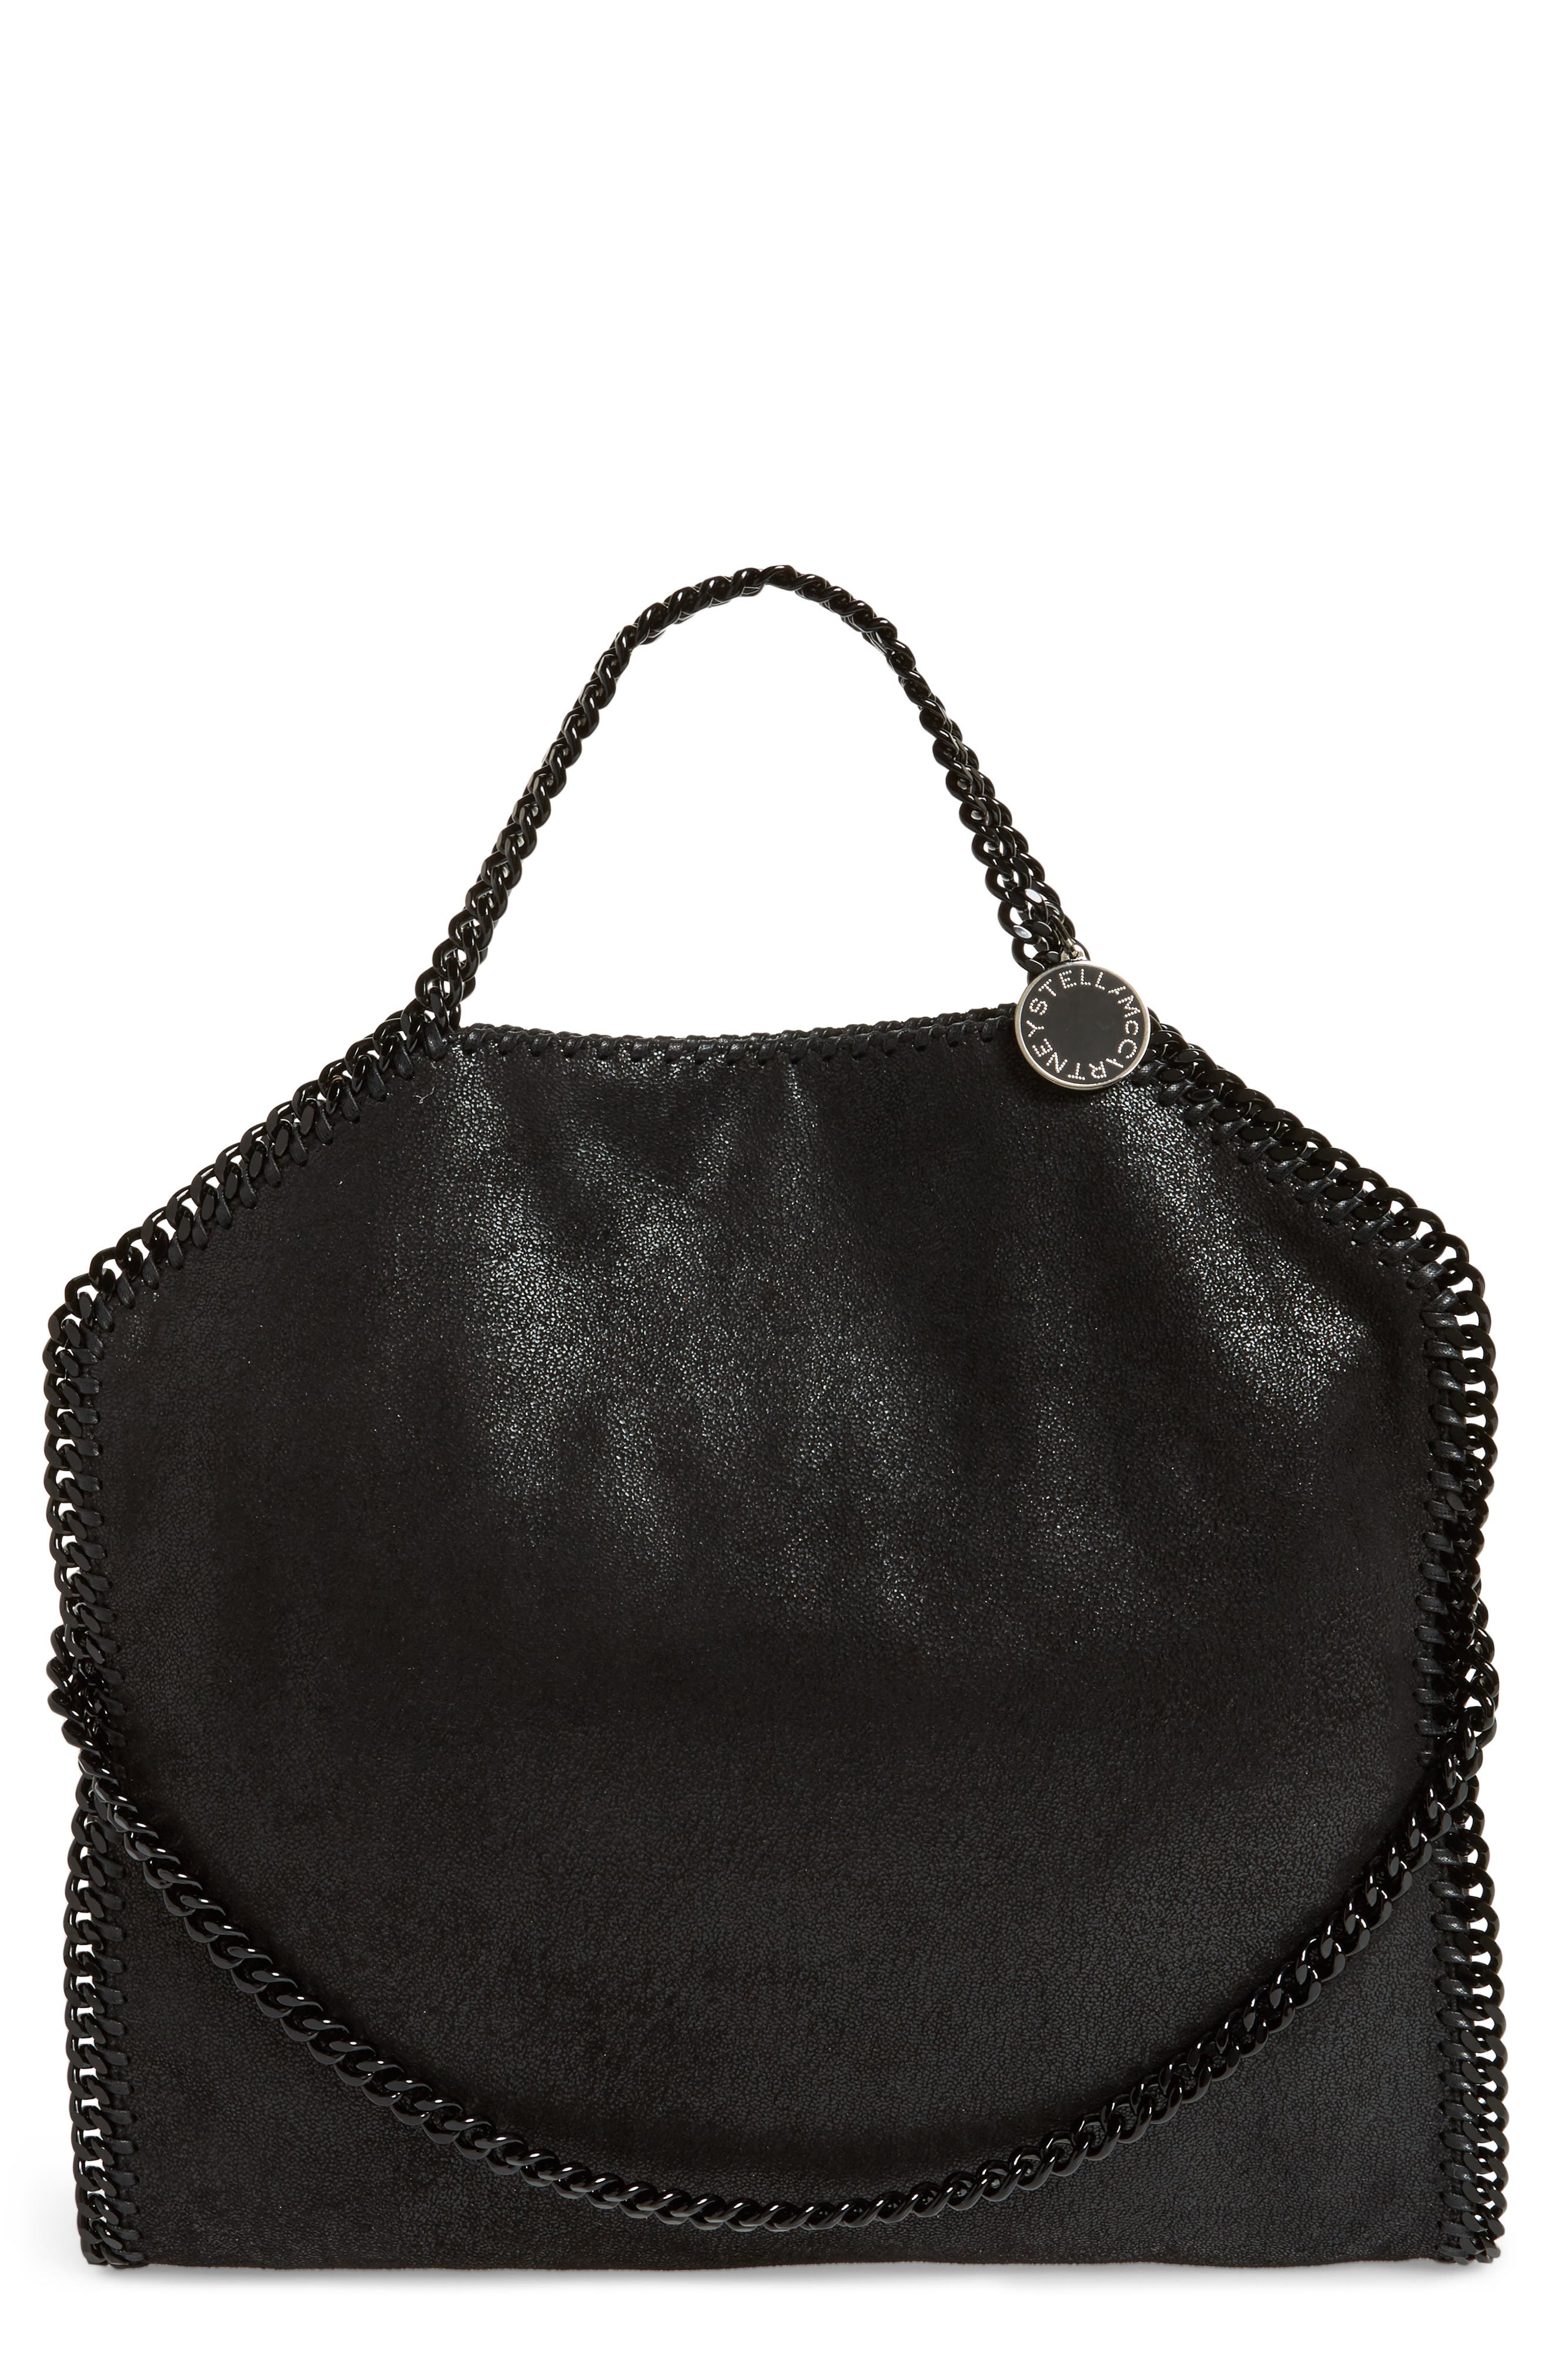 Stella Mccartney Falabella Shaggy Deer Faux Leather Tote - Black